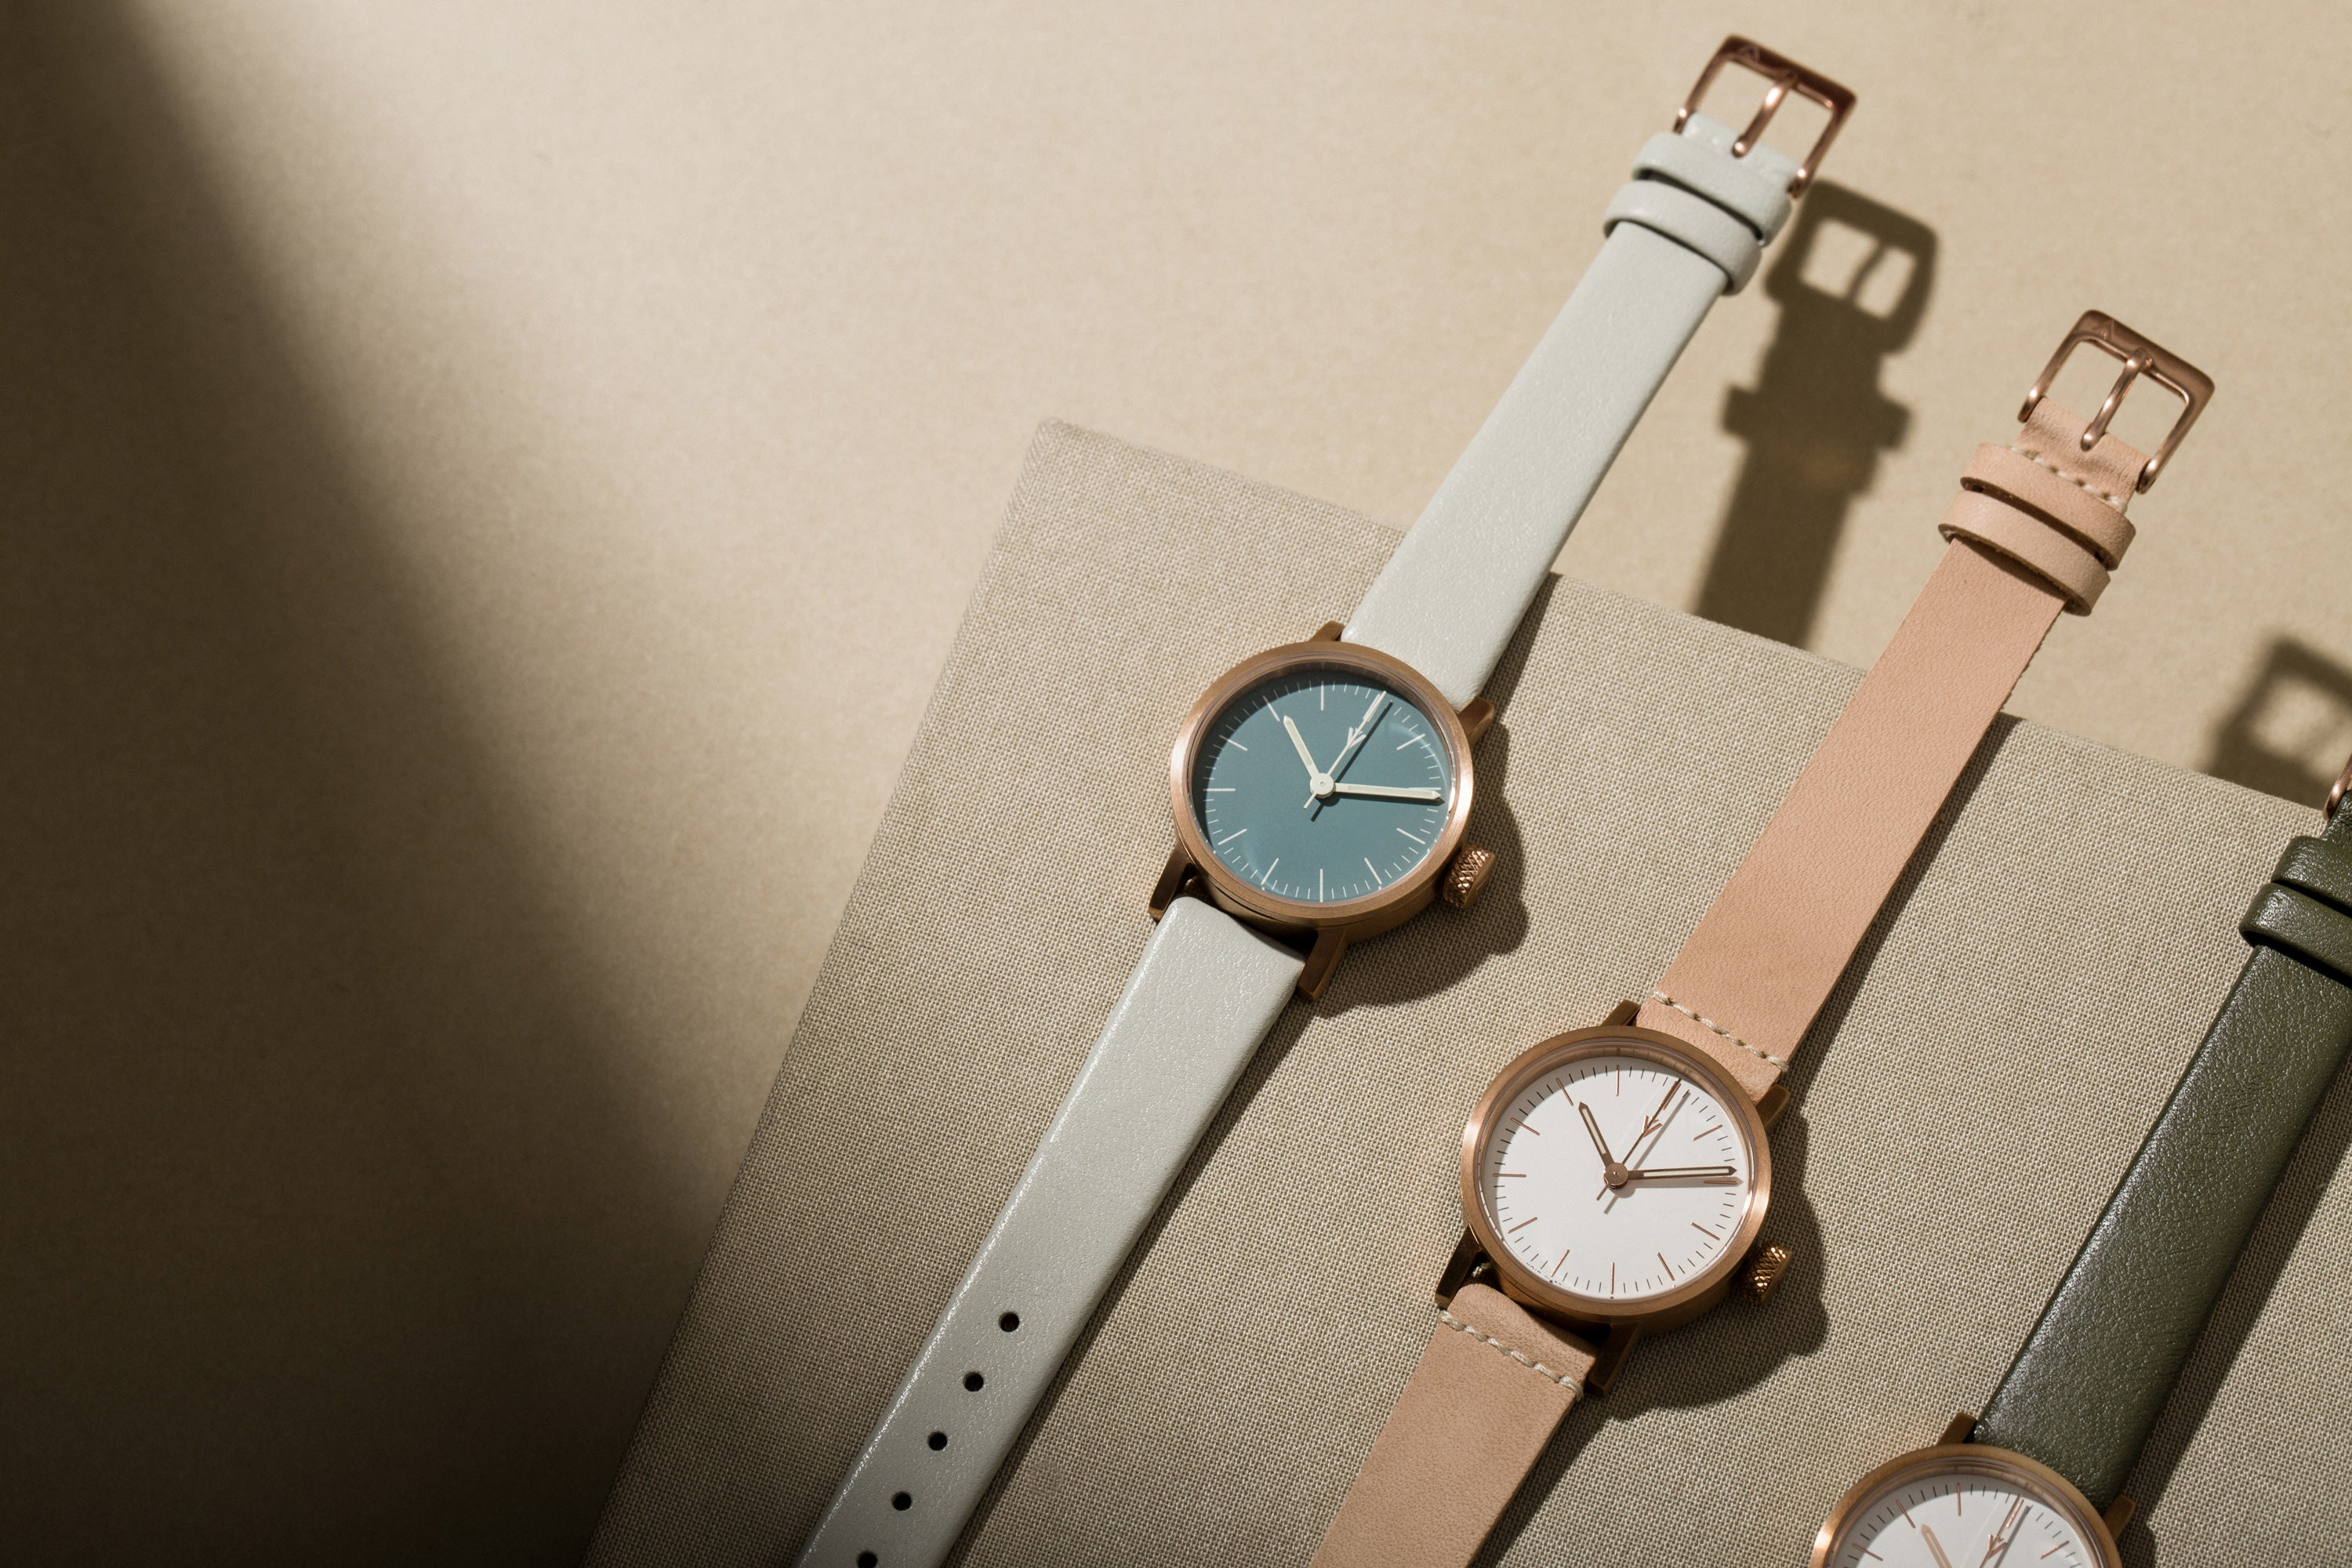 Three copper V03P watches lay on top of a linen book in a neutral toned environment.